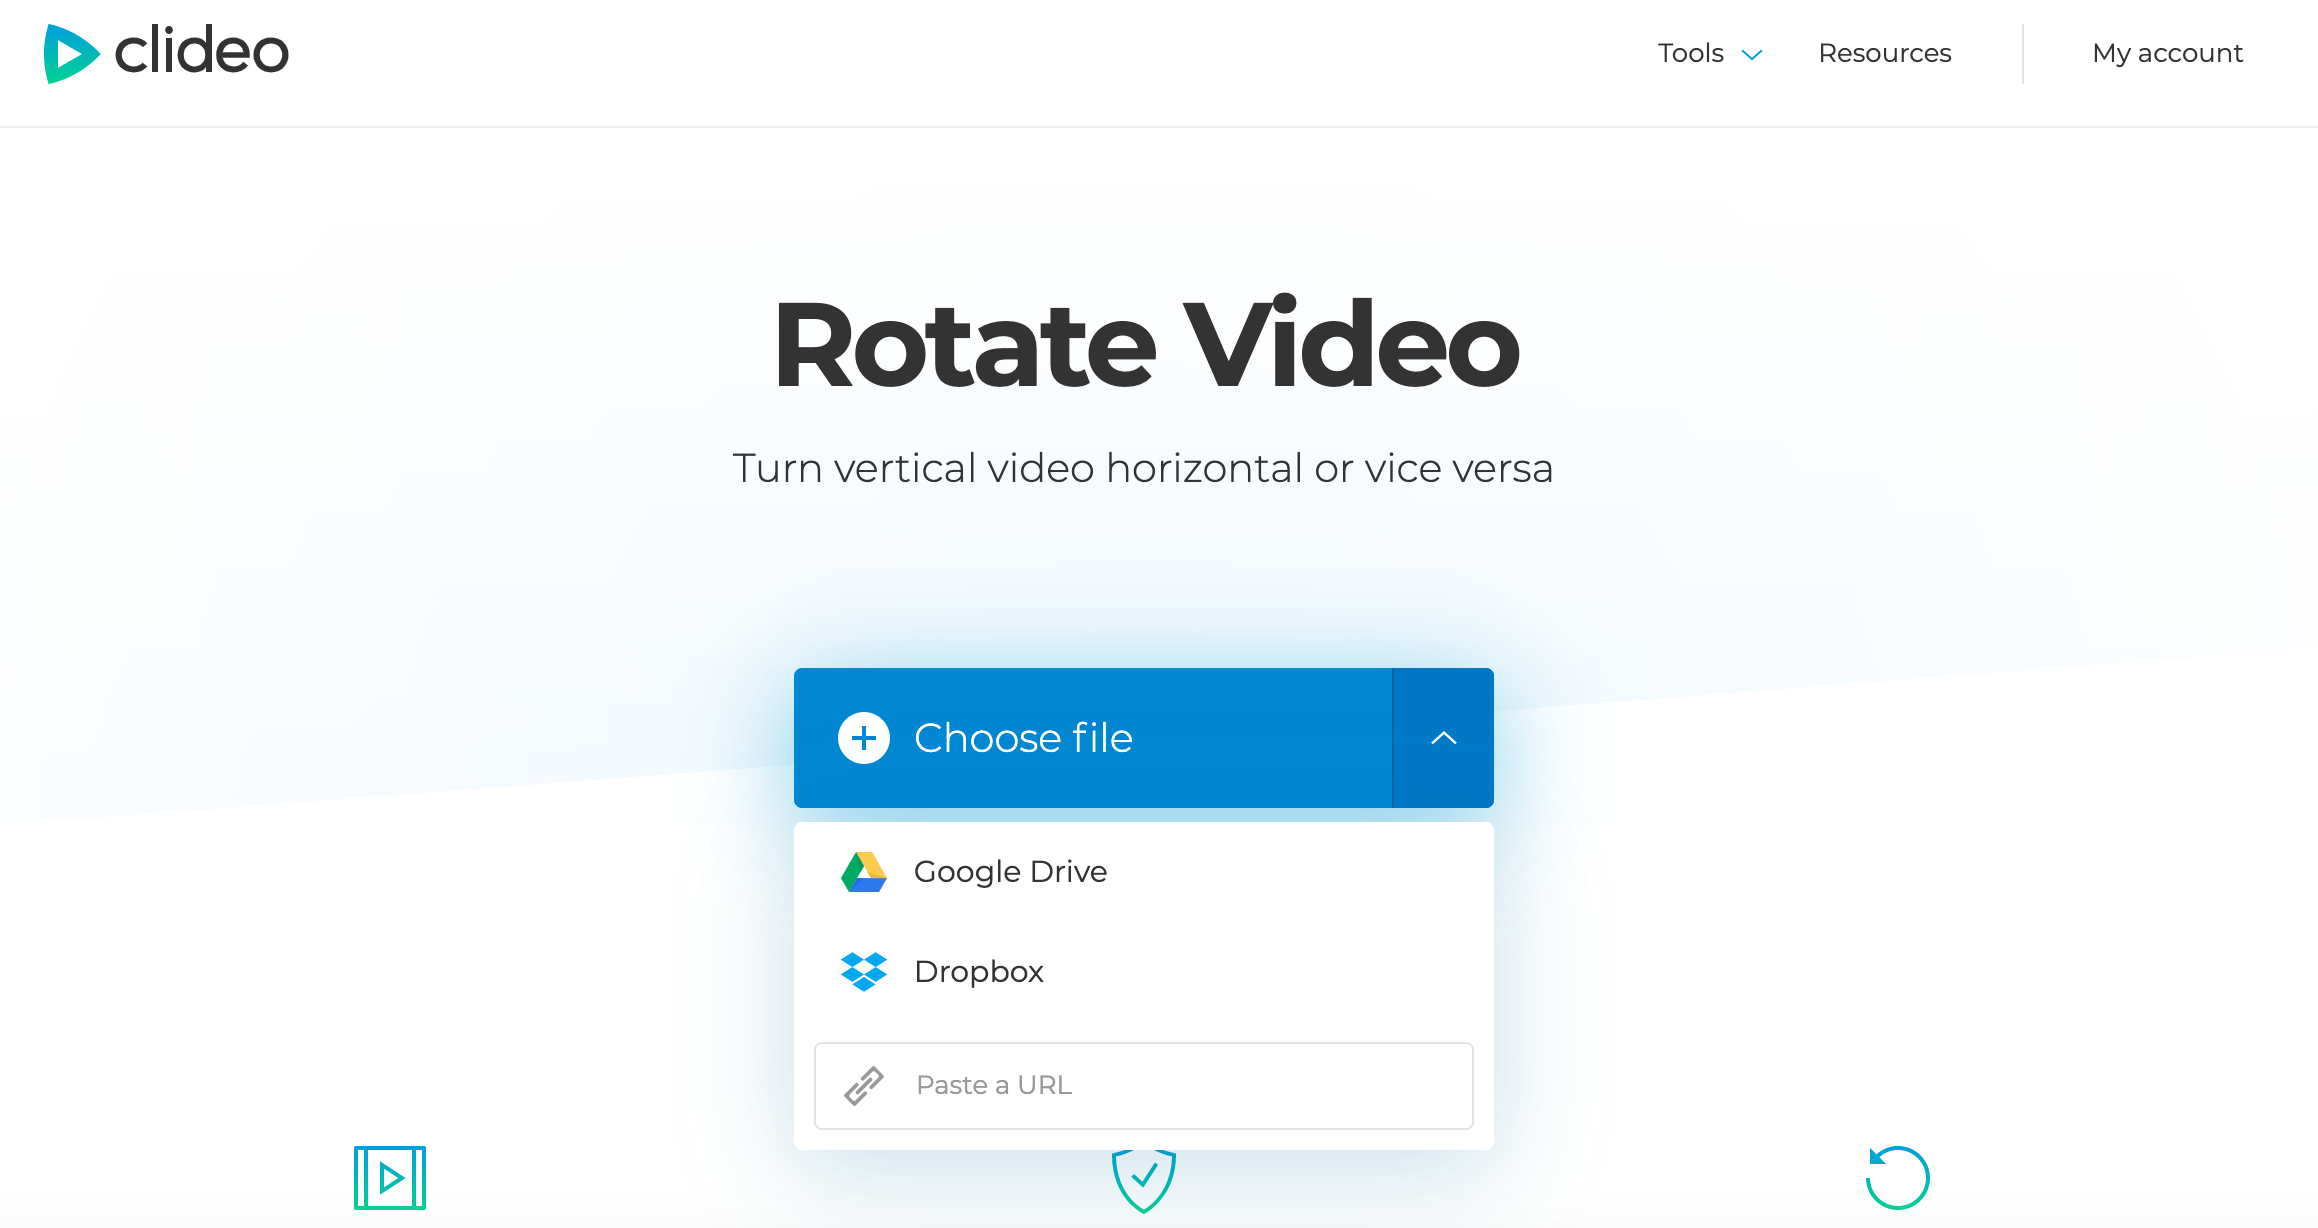 Upload an MP4 video you want to rotate